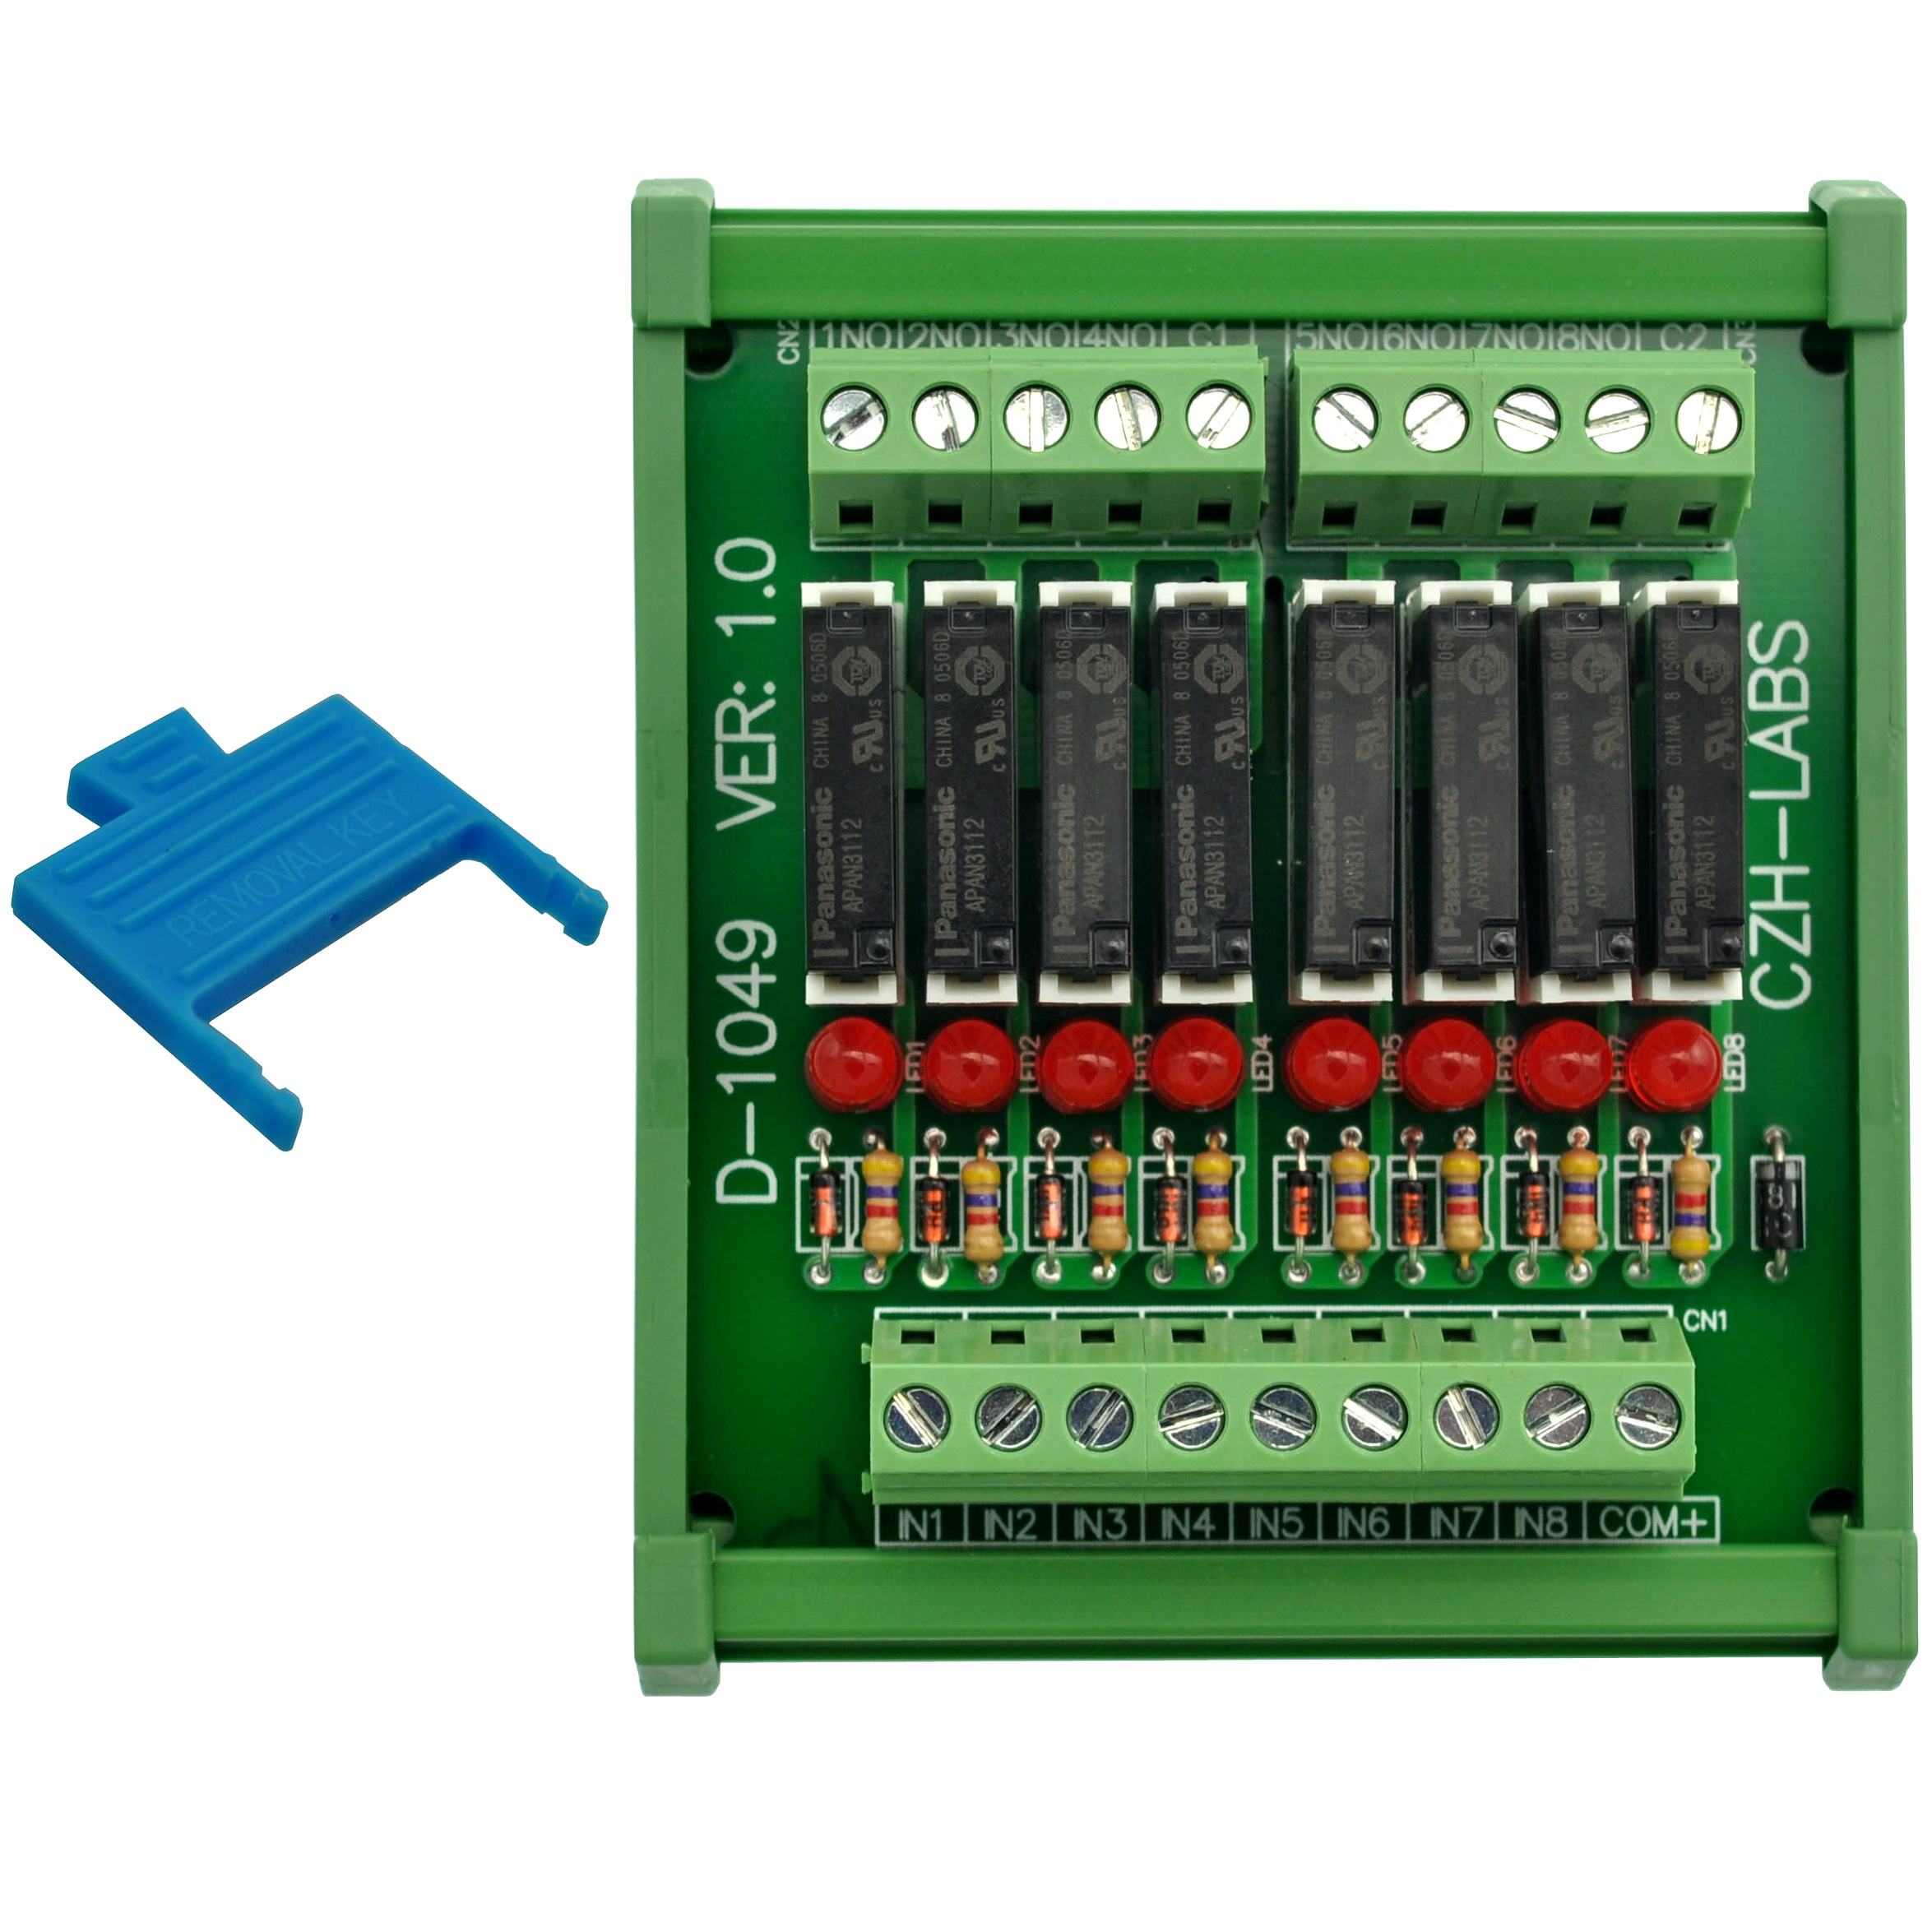 Image 3 - Slim DIN Rail Mount DC12V Sink/NPN 8 SPST NO 5A Power Relay Module, PA1a 12V-in Electronics Stocks from Electronic Components & Supplies